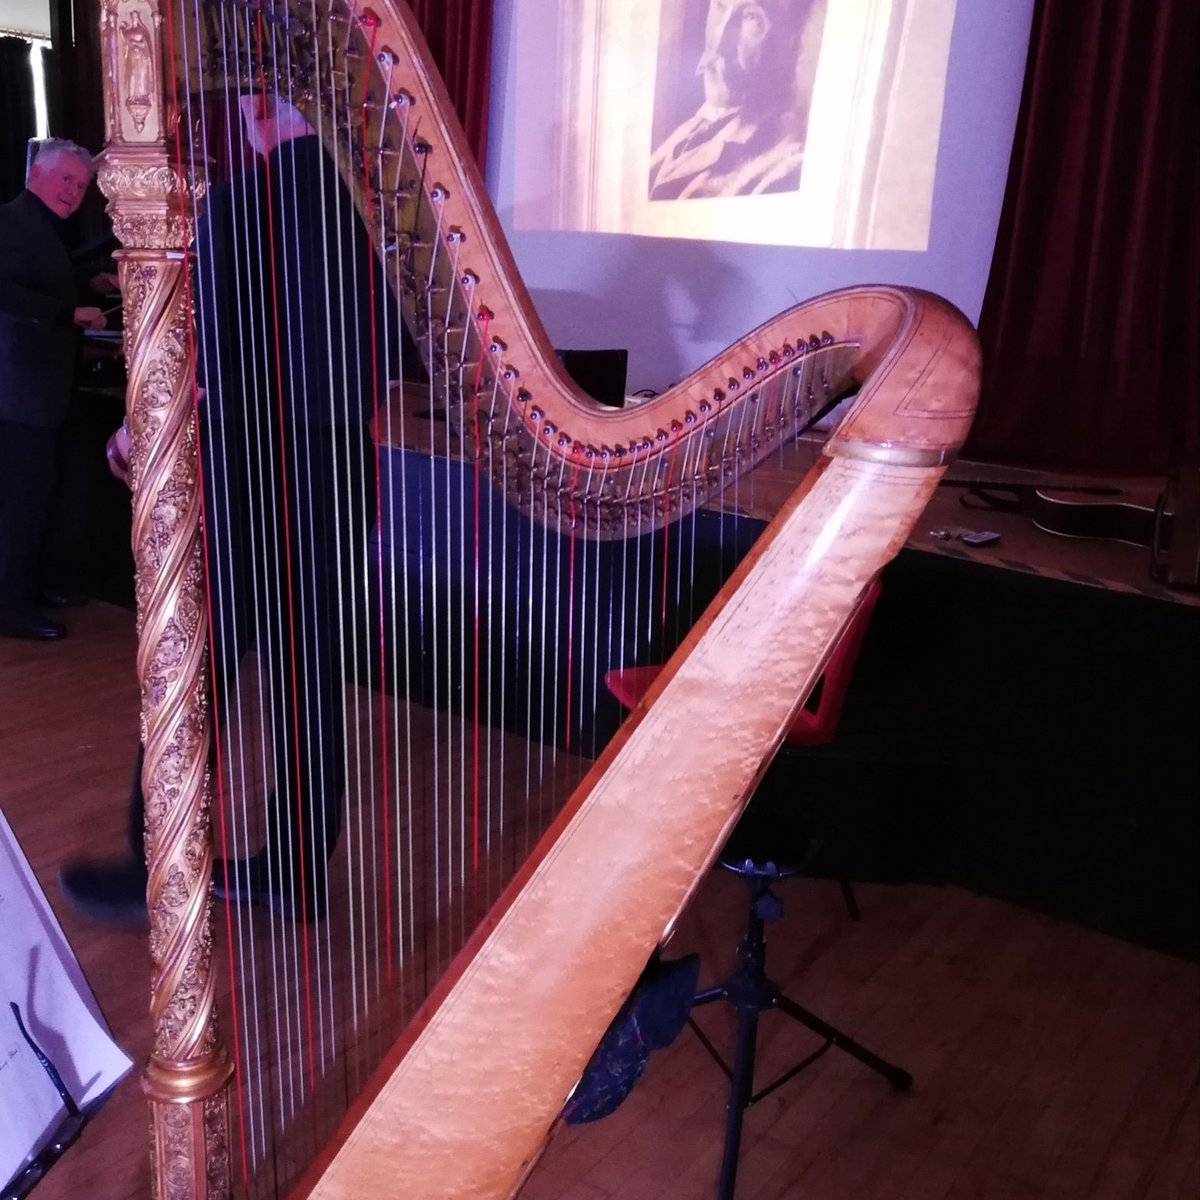 Hatch Beauchamp today, next week Wyvern will be performing 'Words take Wing' at Otterham village hall Cornwall on March 7th at 8pm - A #folk #drama with #traditional #music & #song based on the journals of Thomas Hardy. #harp #folksong #folkmusic  @ThomasHardy21 @ThomasHardyPoet